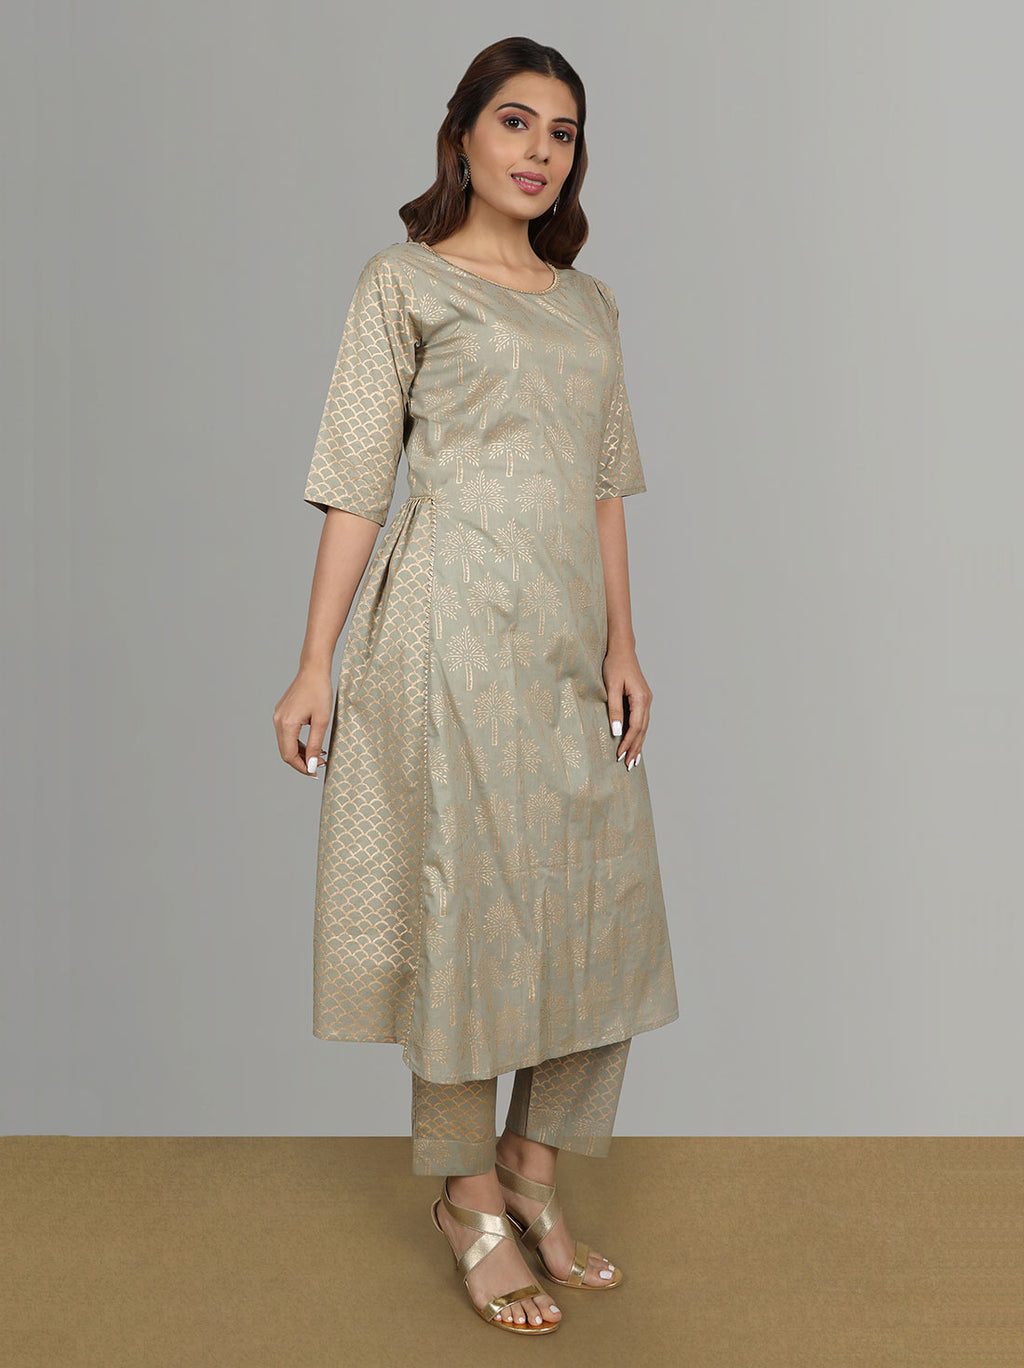 Ethnic Festive Kurtas - Gold printed kurtis with pants